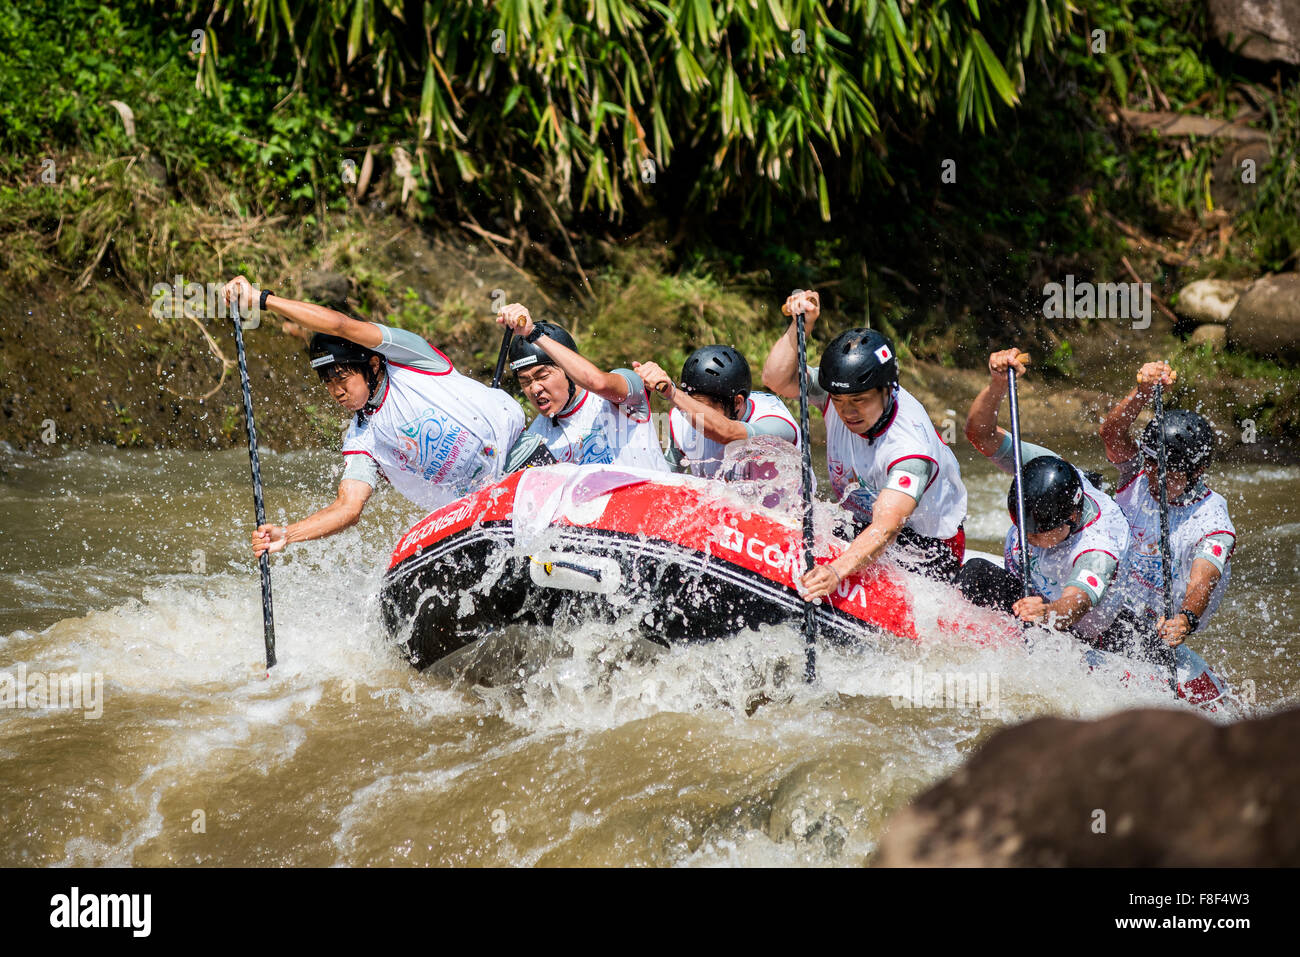 Japan U23 men's team in action in the sprint race category during the 2015 World Rafting Championships. - Stock Image